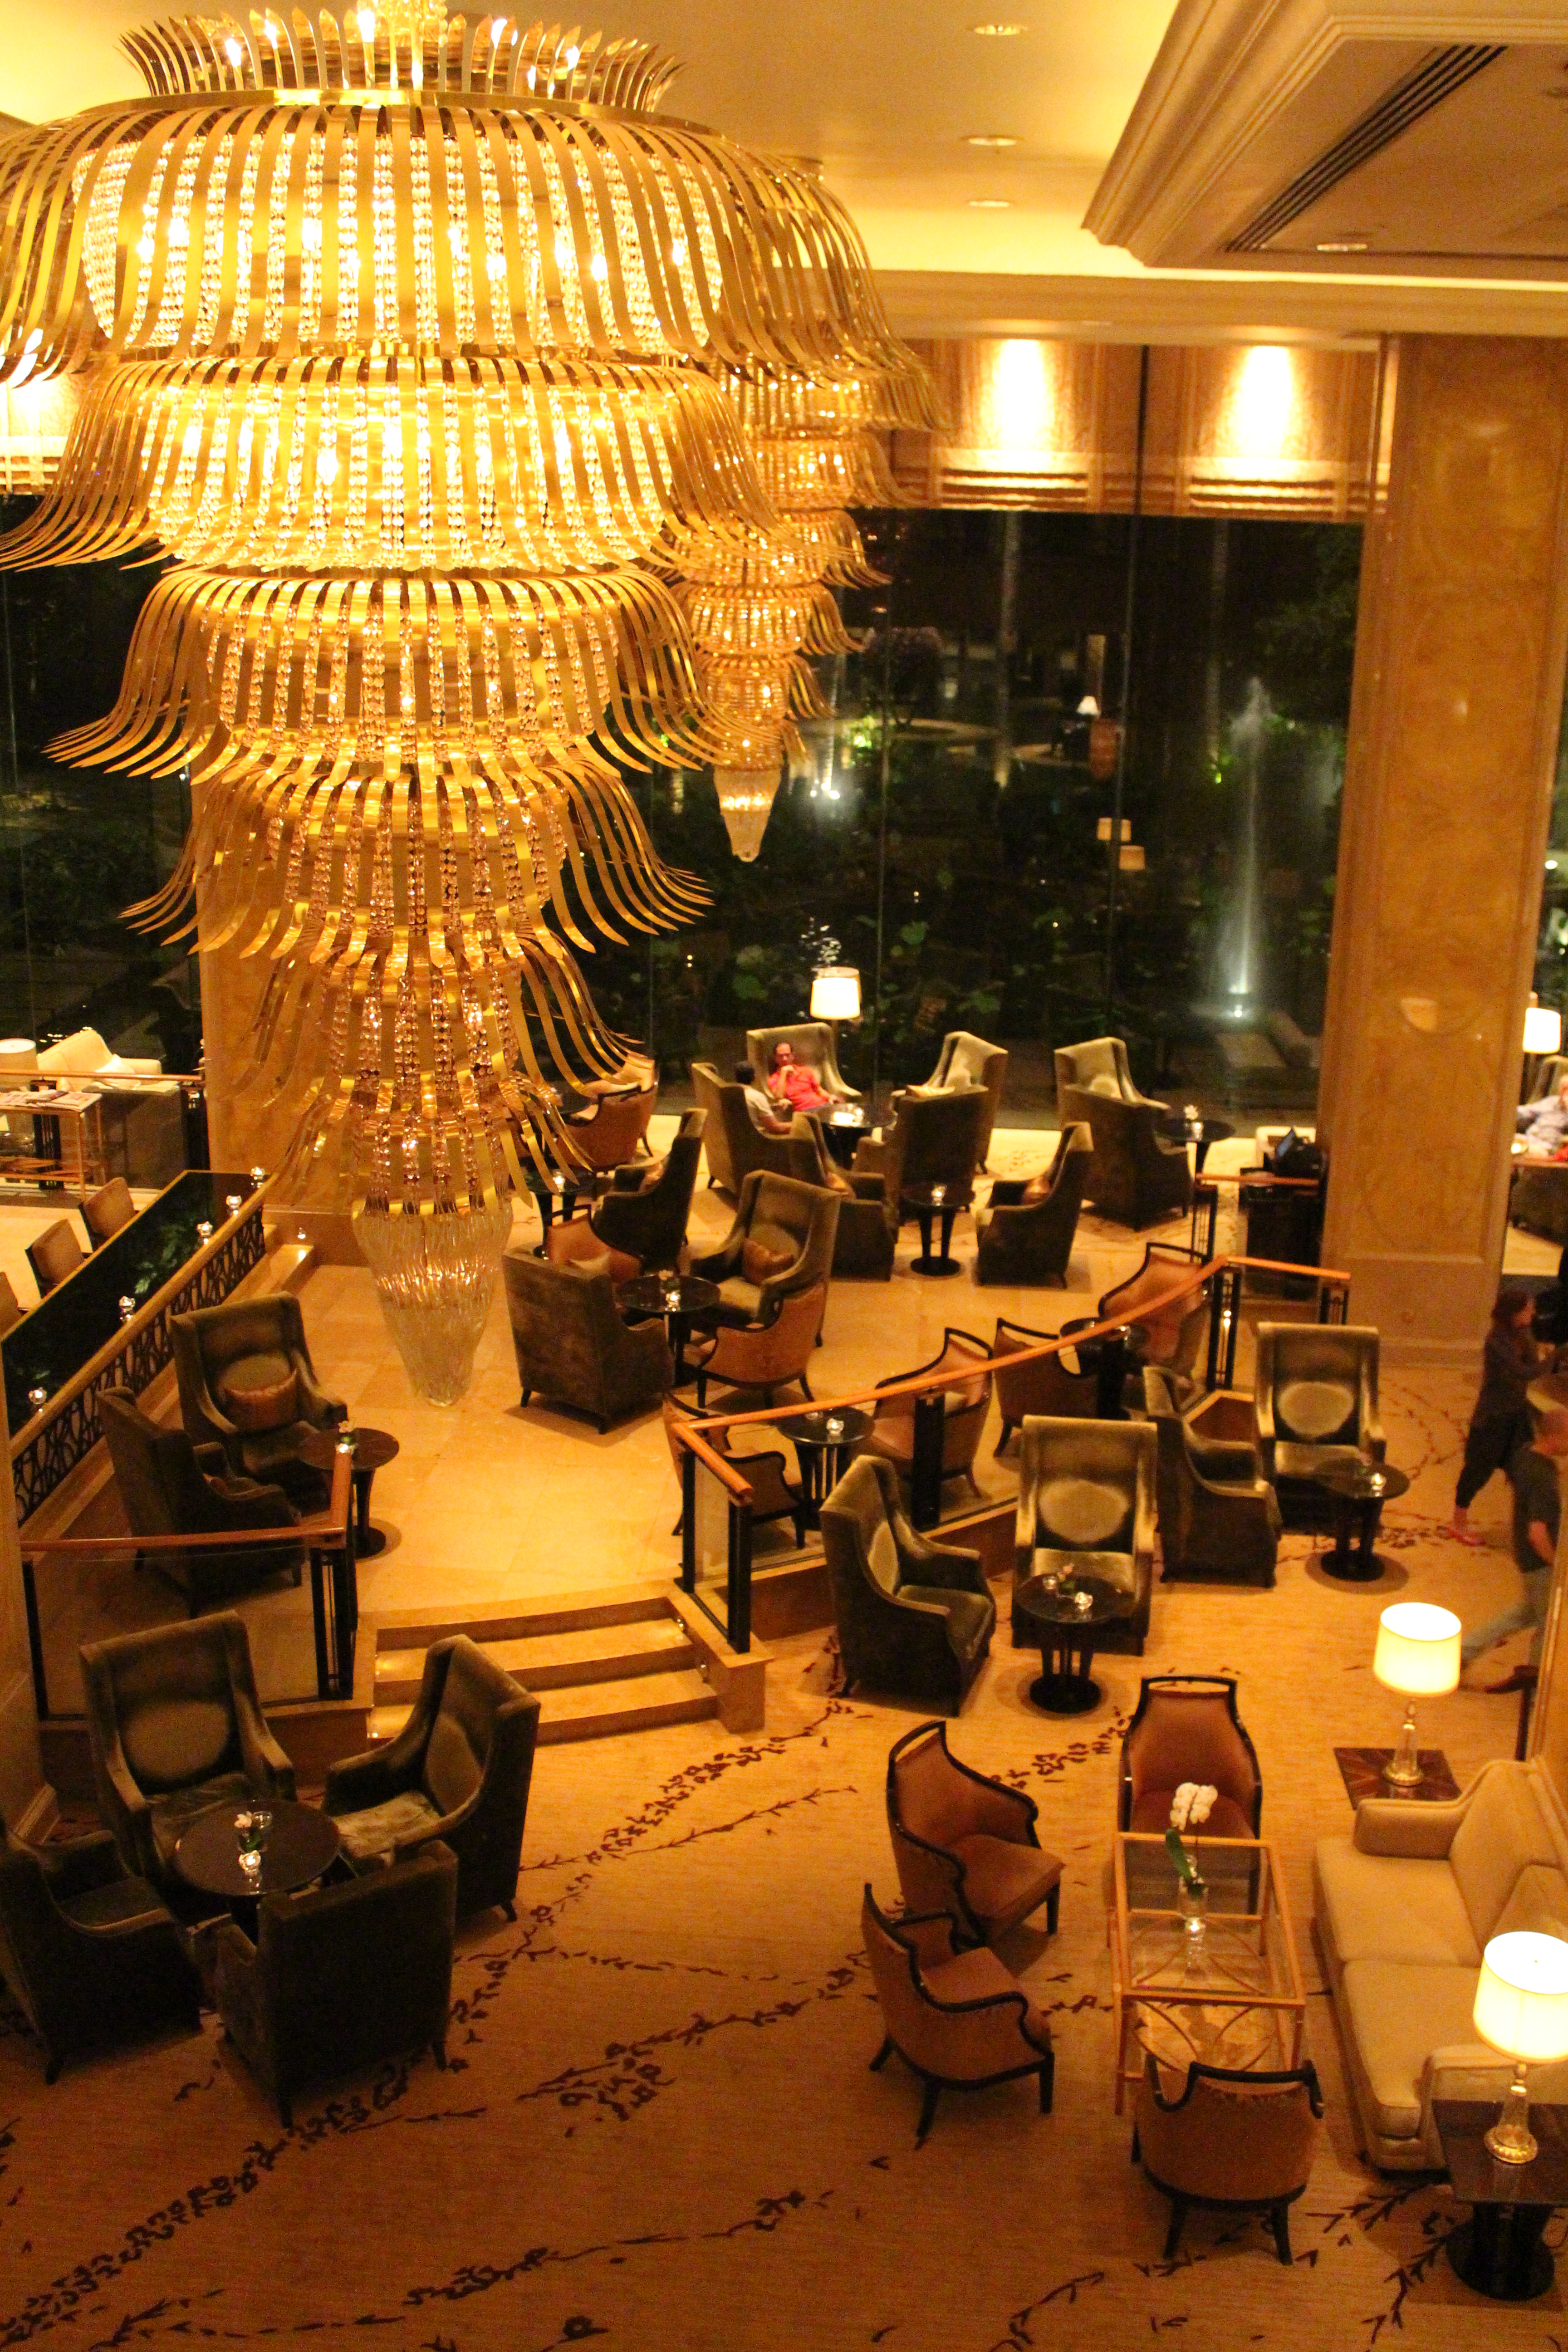 Lounge at the Shangri La Hotel in Kuala Lumpur with a 6 tiered funnel chandelier.